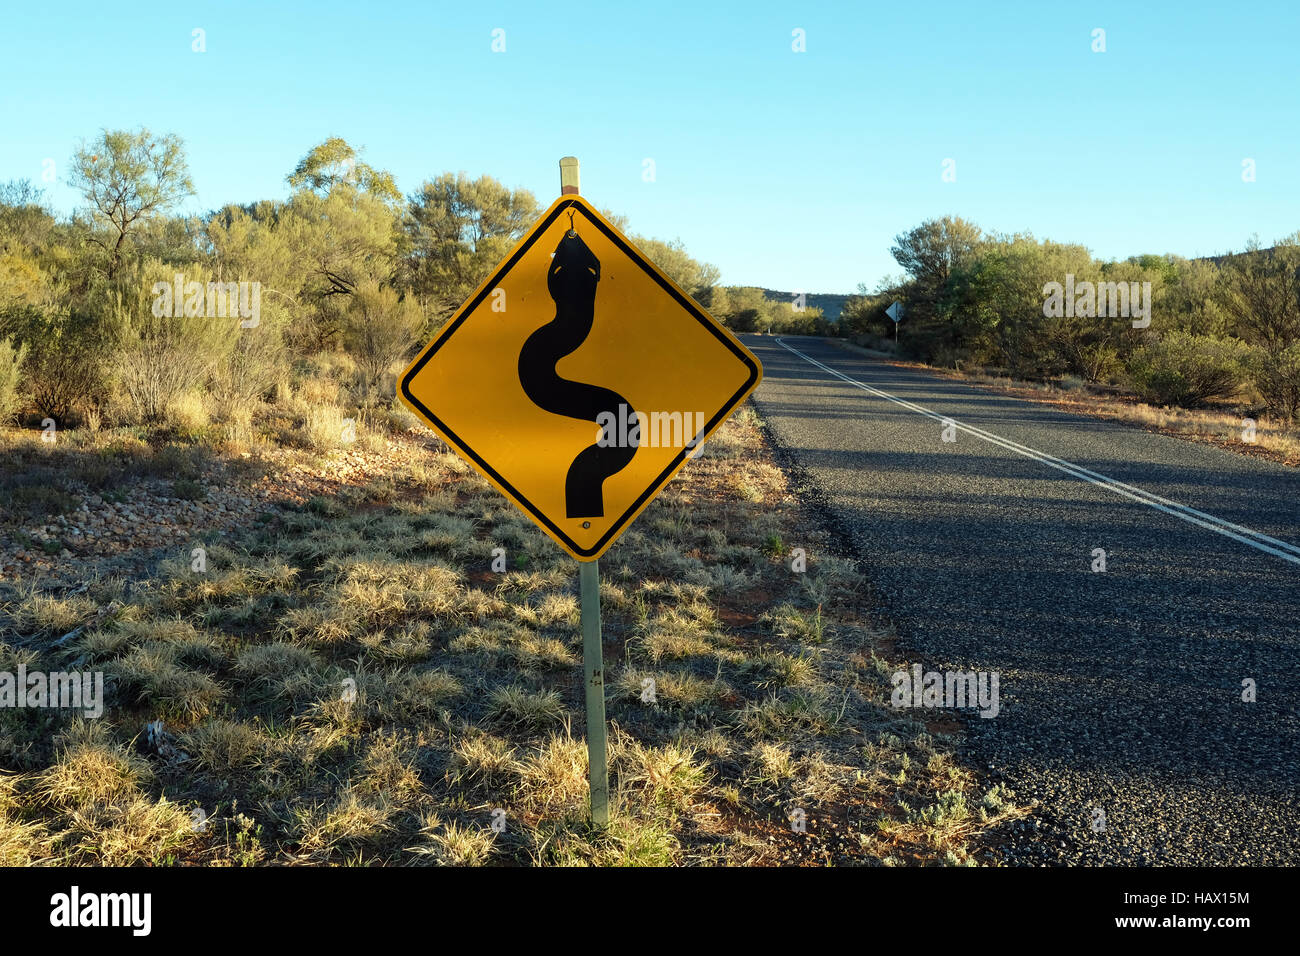 A roadside sign warning about snakes in Darken Drive, Northern Territory, Central Australia - Stock Image